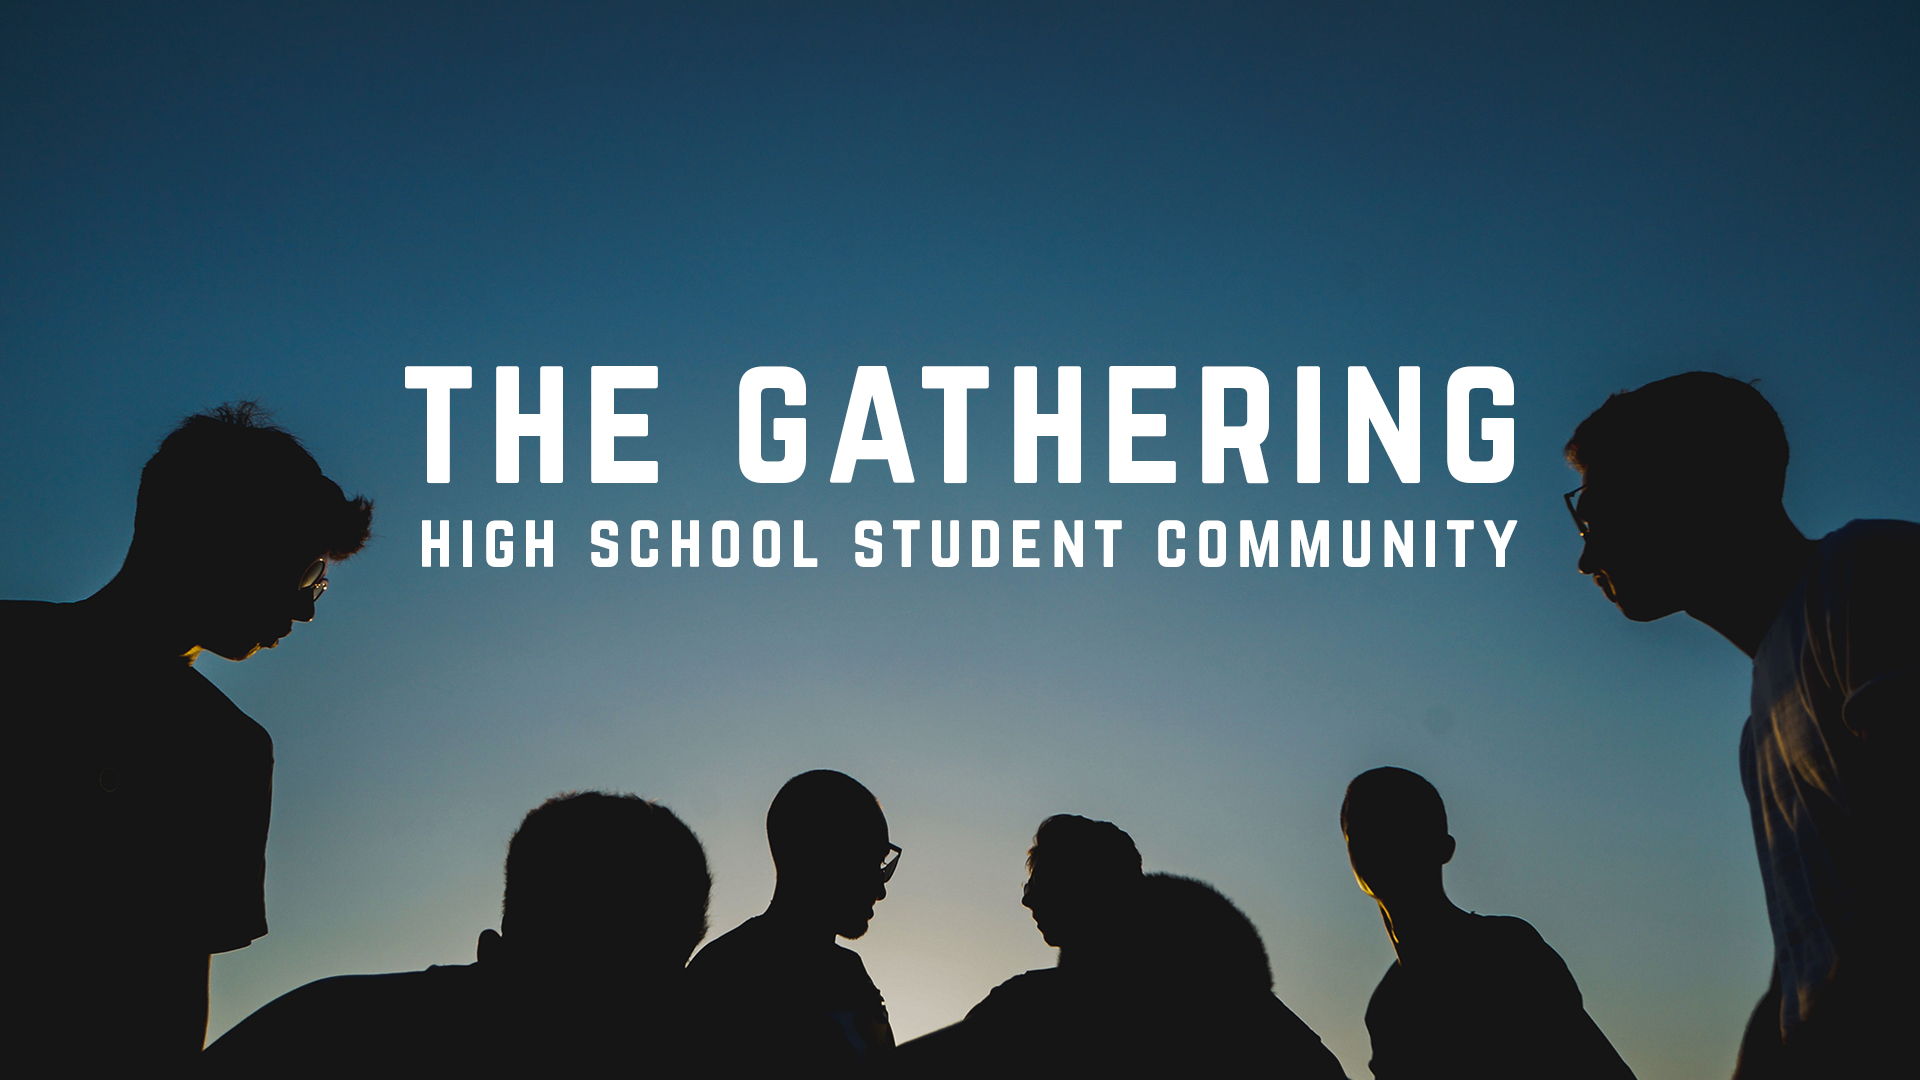 High School: The Gathering